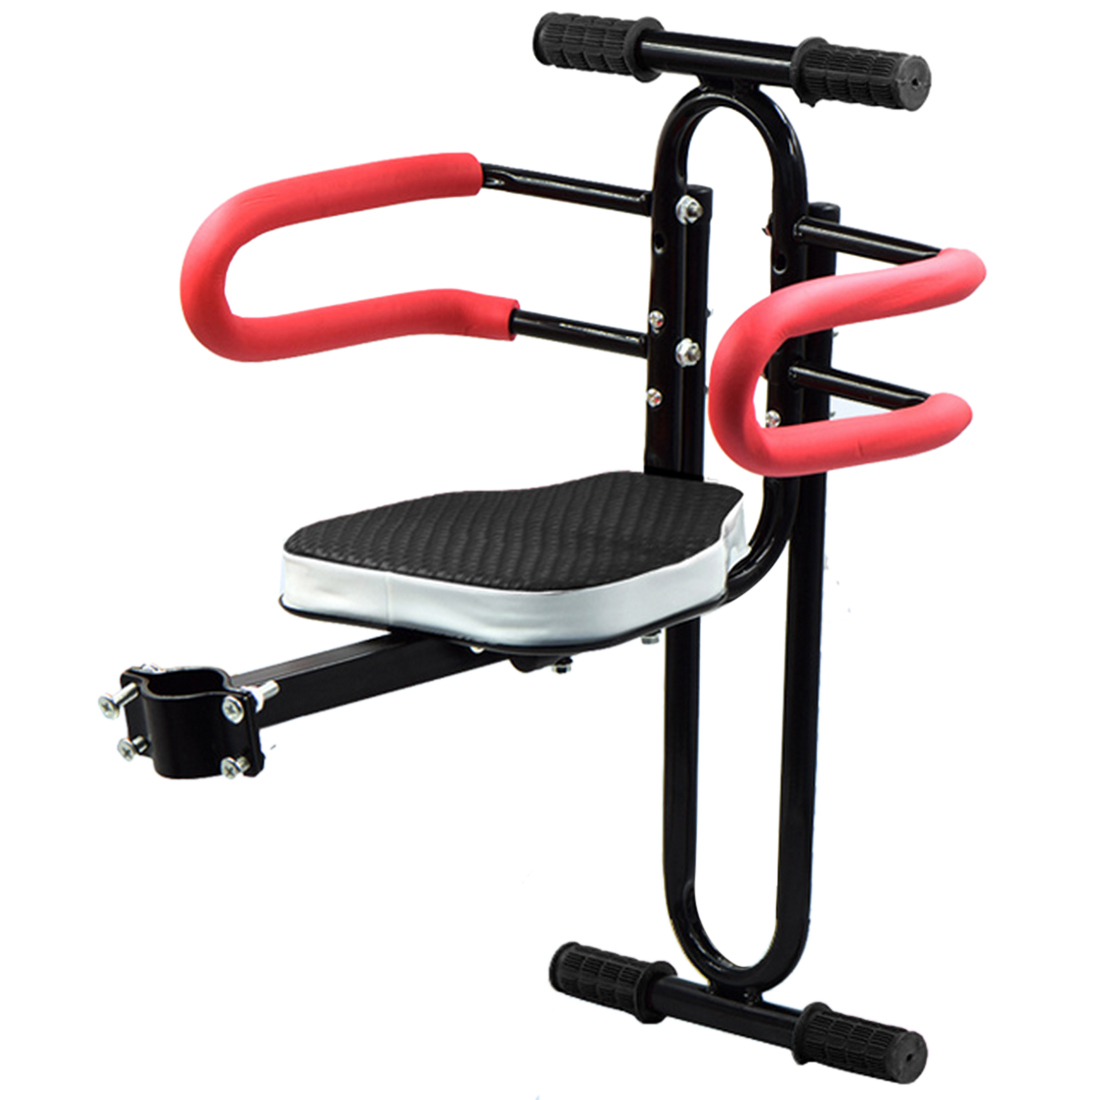 Lixada Child Bicycle Safety Seat with Armrest Guard Bar and Footrest - Black